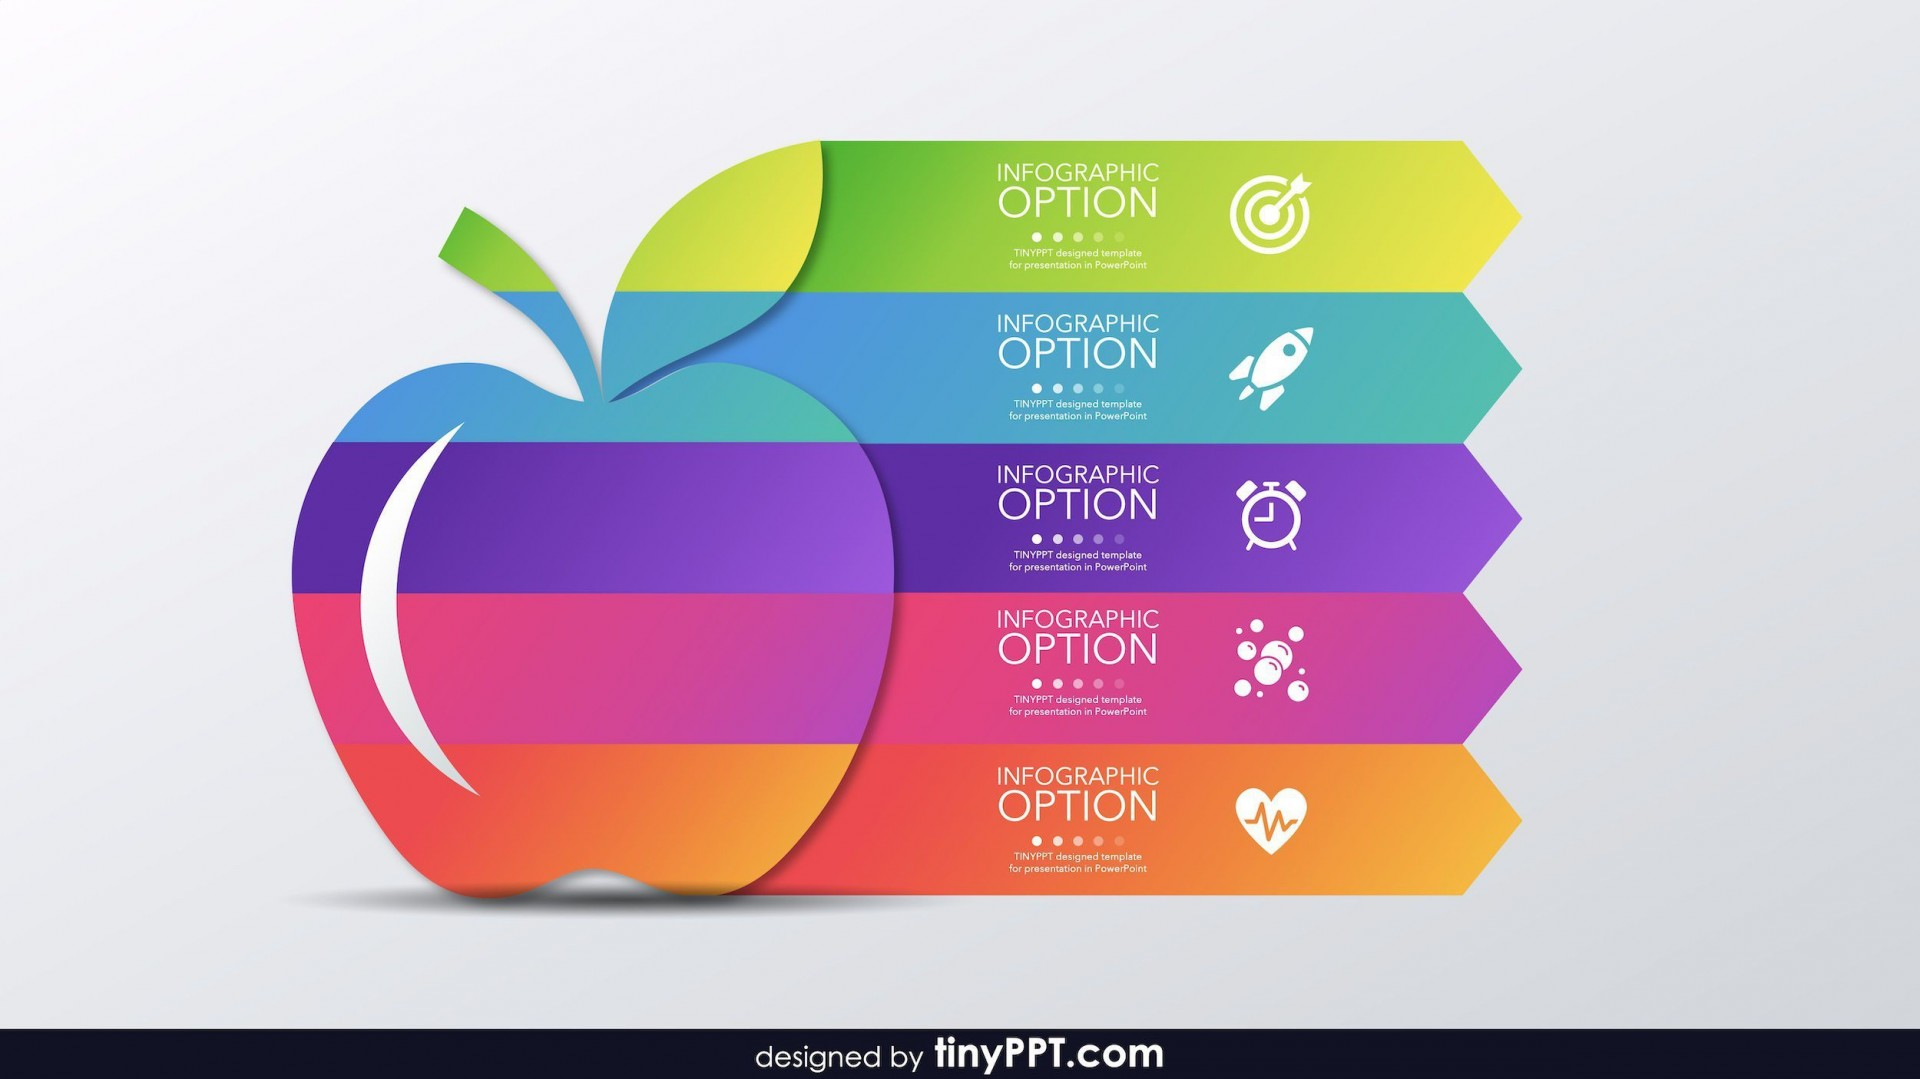 007 Excellent Animated Ppt Template Free Download 2010 Picture  3d Powerpoint1920